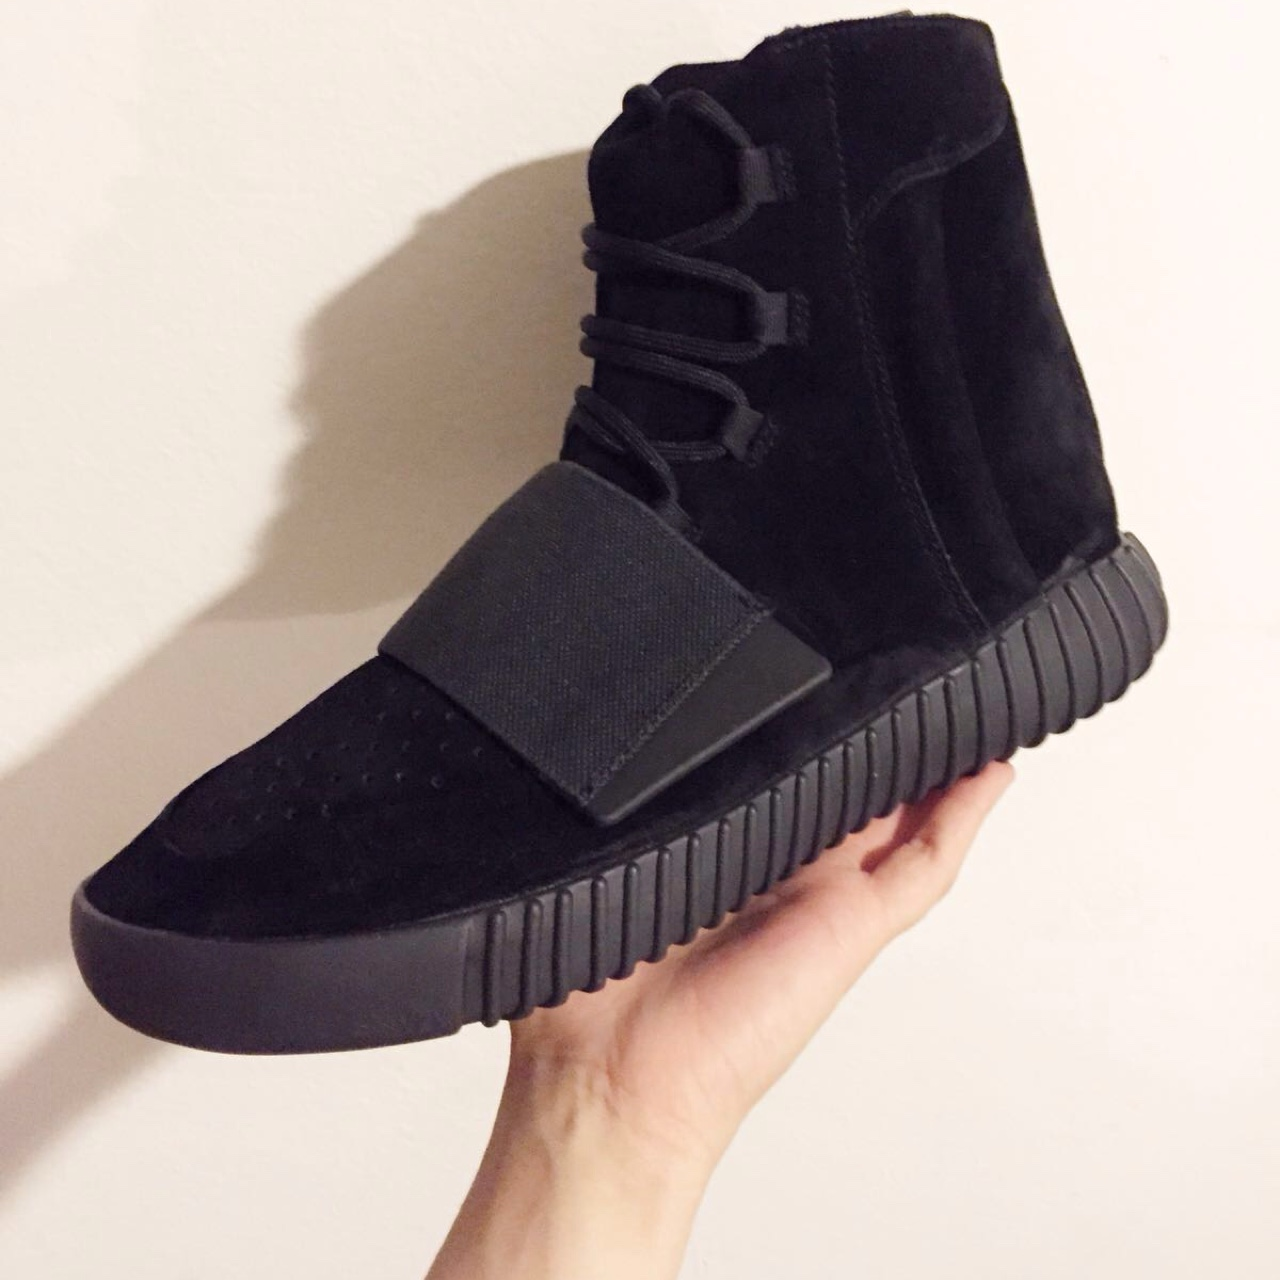 new arrival 20b82 e8fb9 ADIDAS YEEZY BOOST 750 PIRATE BLACK €1,000.00 ...